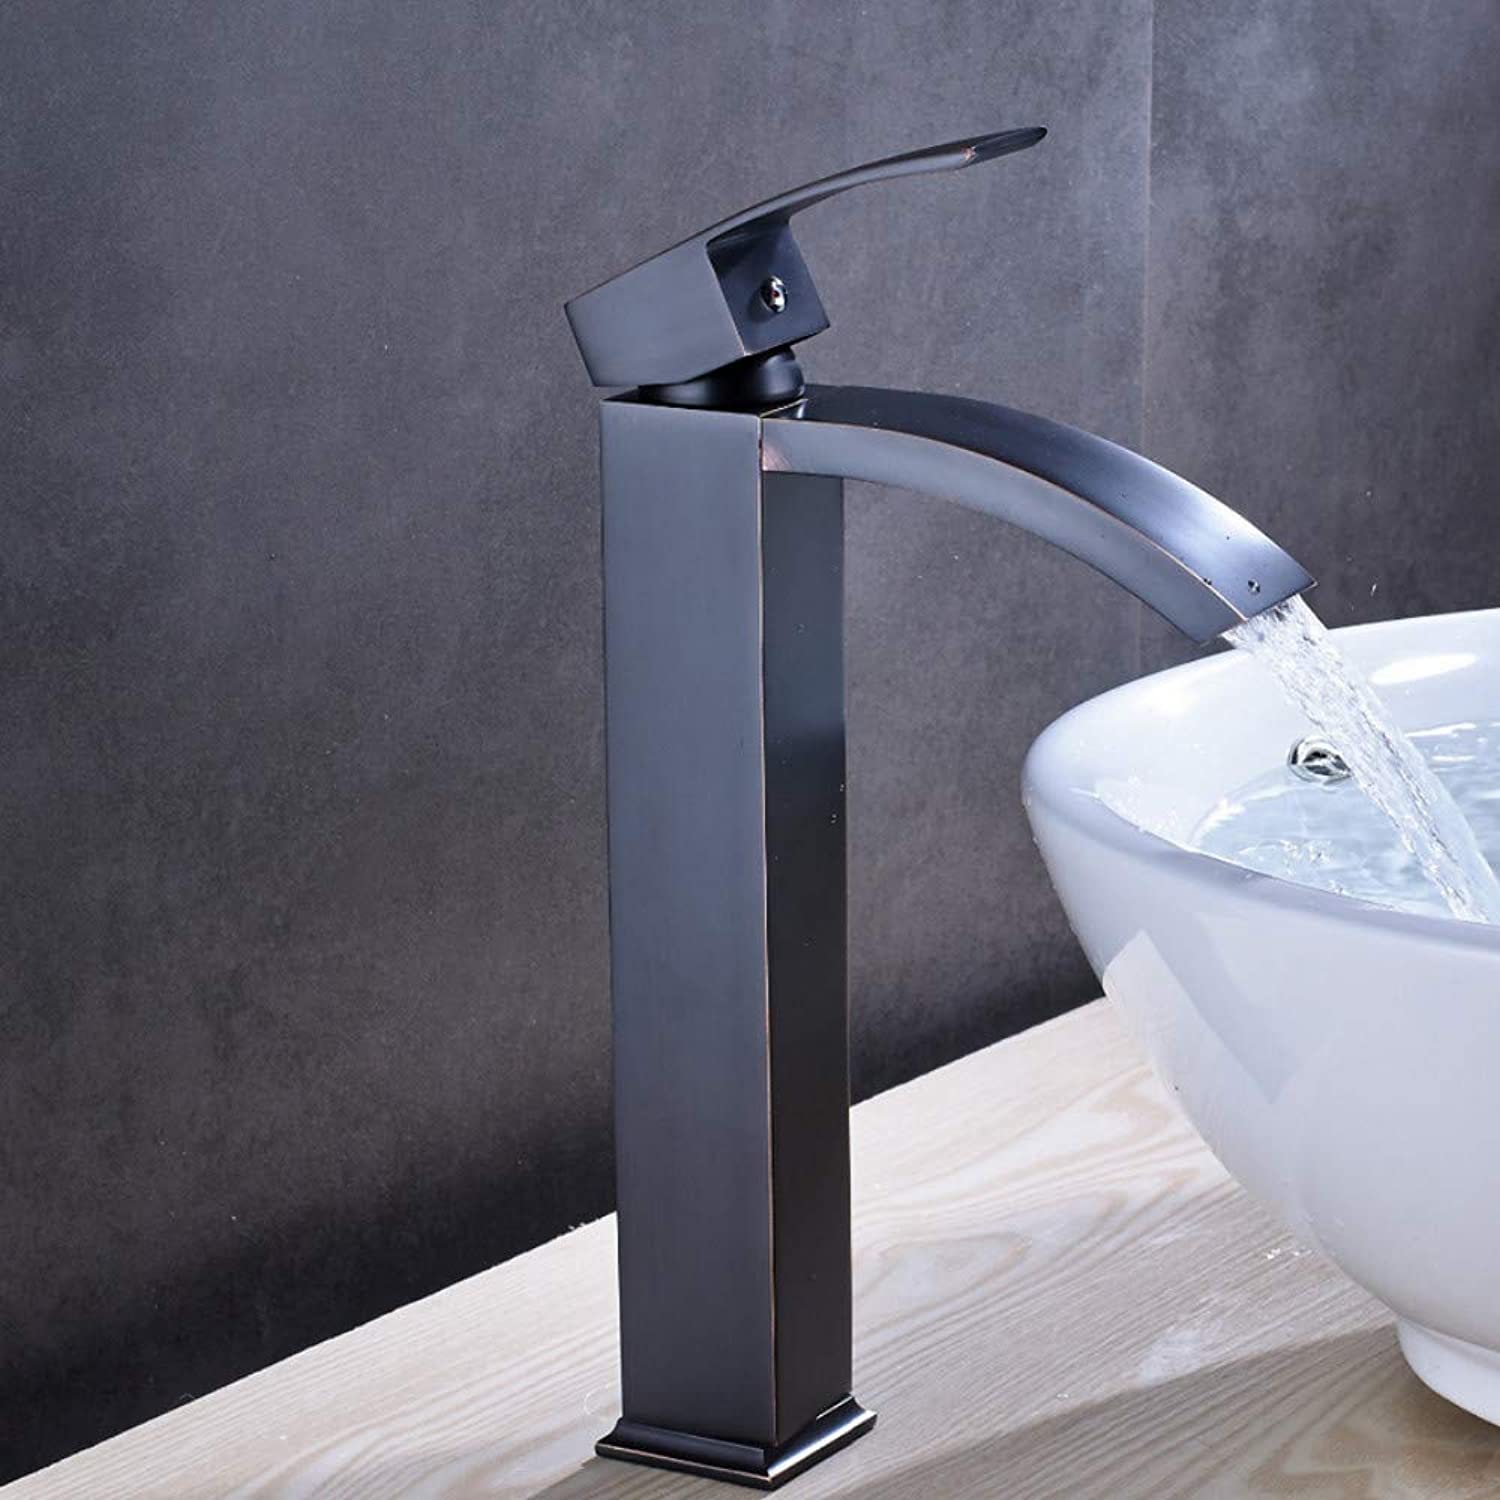 LLLYZZ Solid Brass Luxury Tall Bathroom Faucet Oil Rubbed Bronze Sink Faucet Mixer Tap New